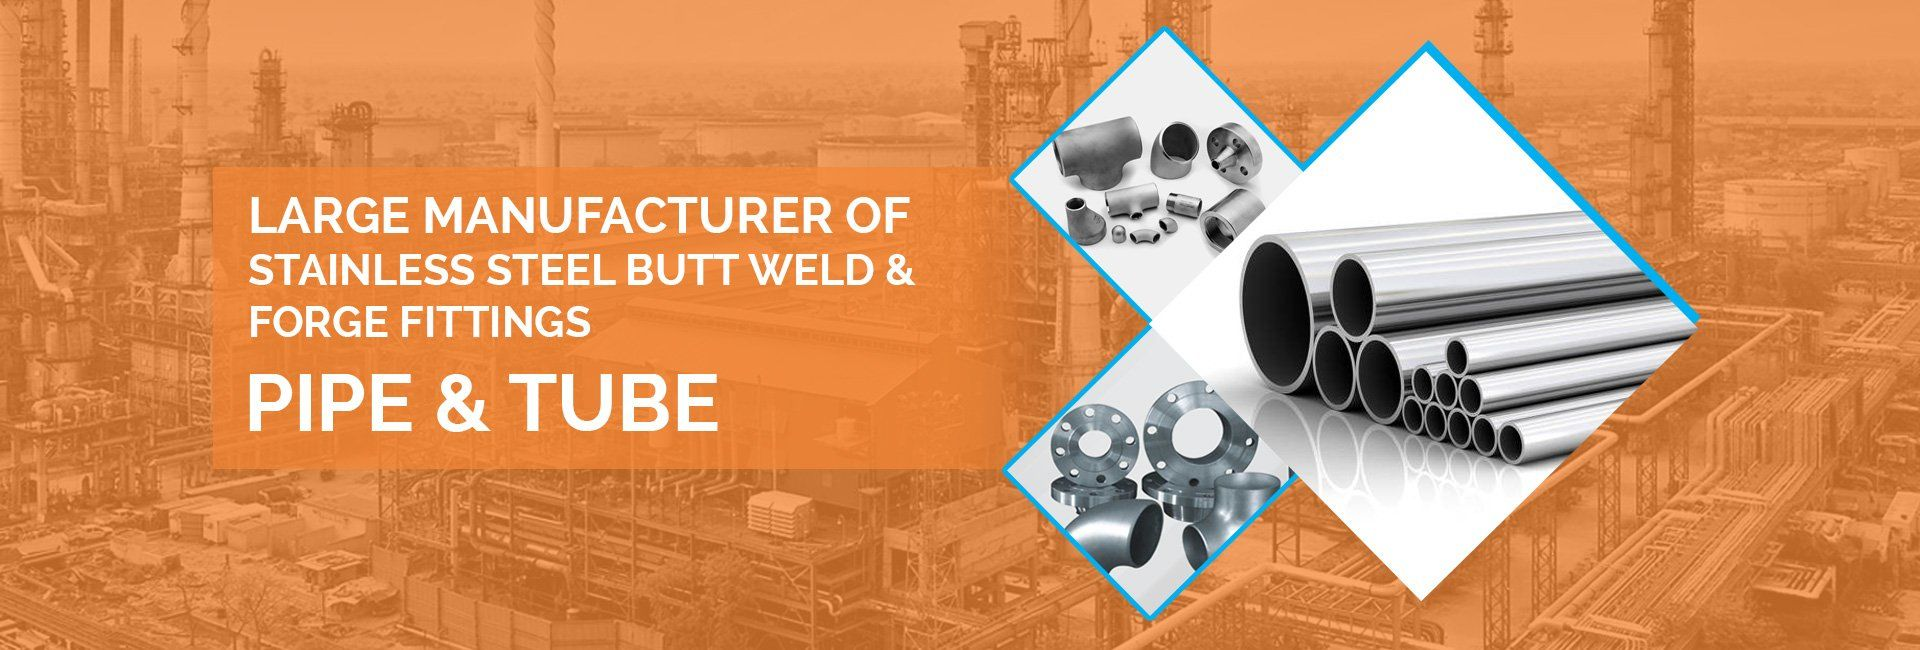 SS Butt Weld and Forge Fittings Manufacturer in India